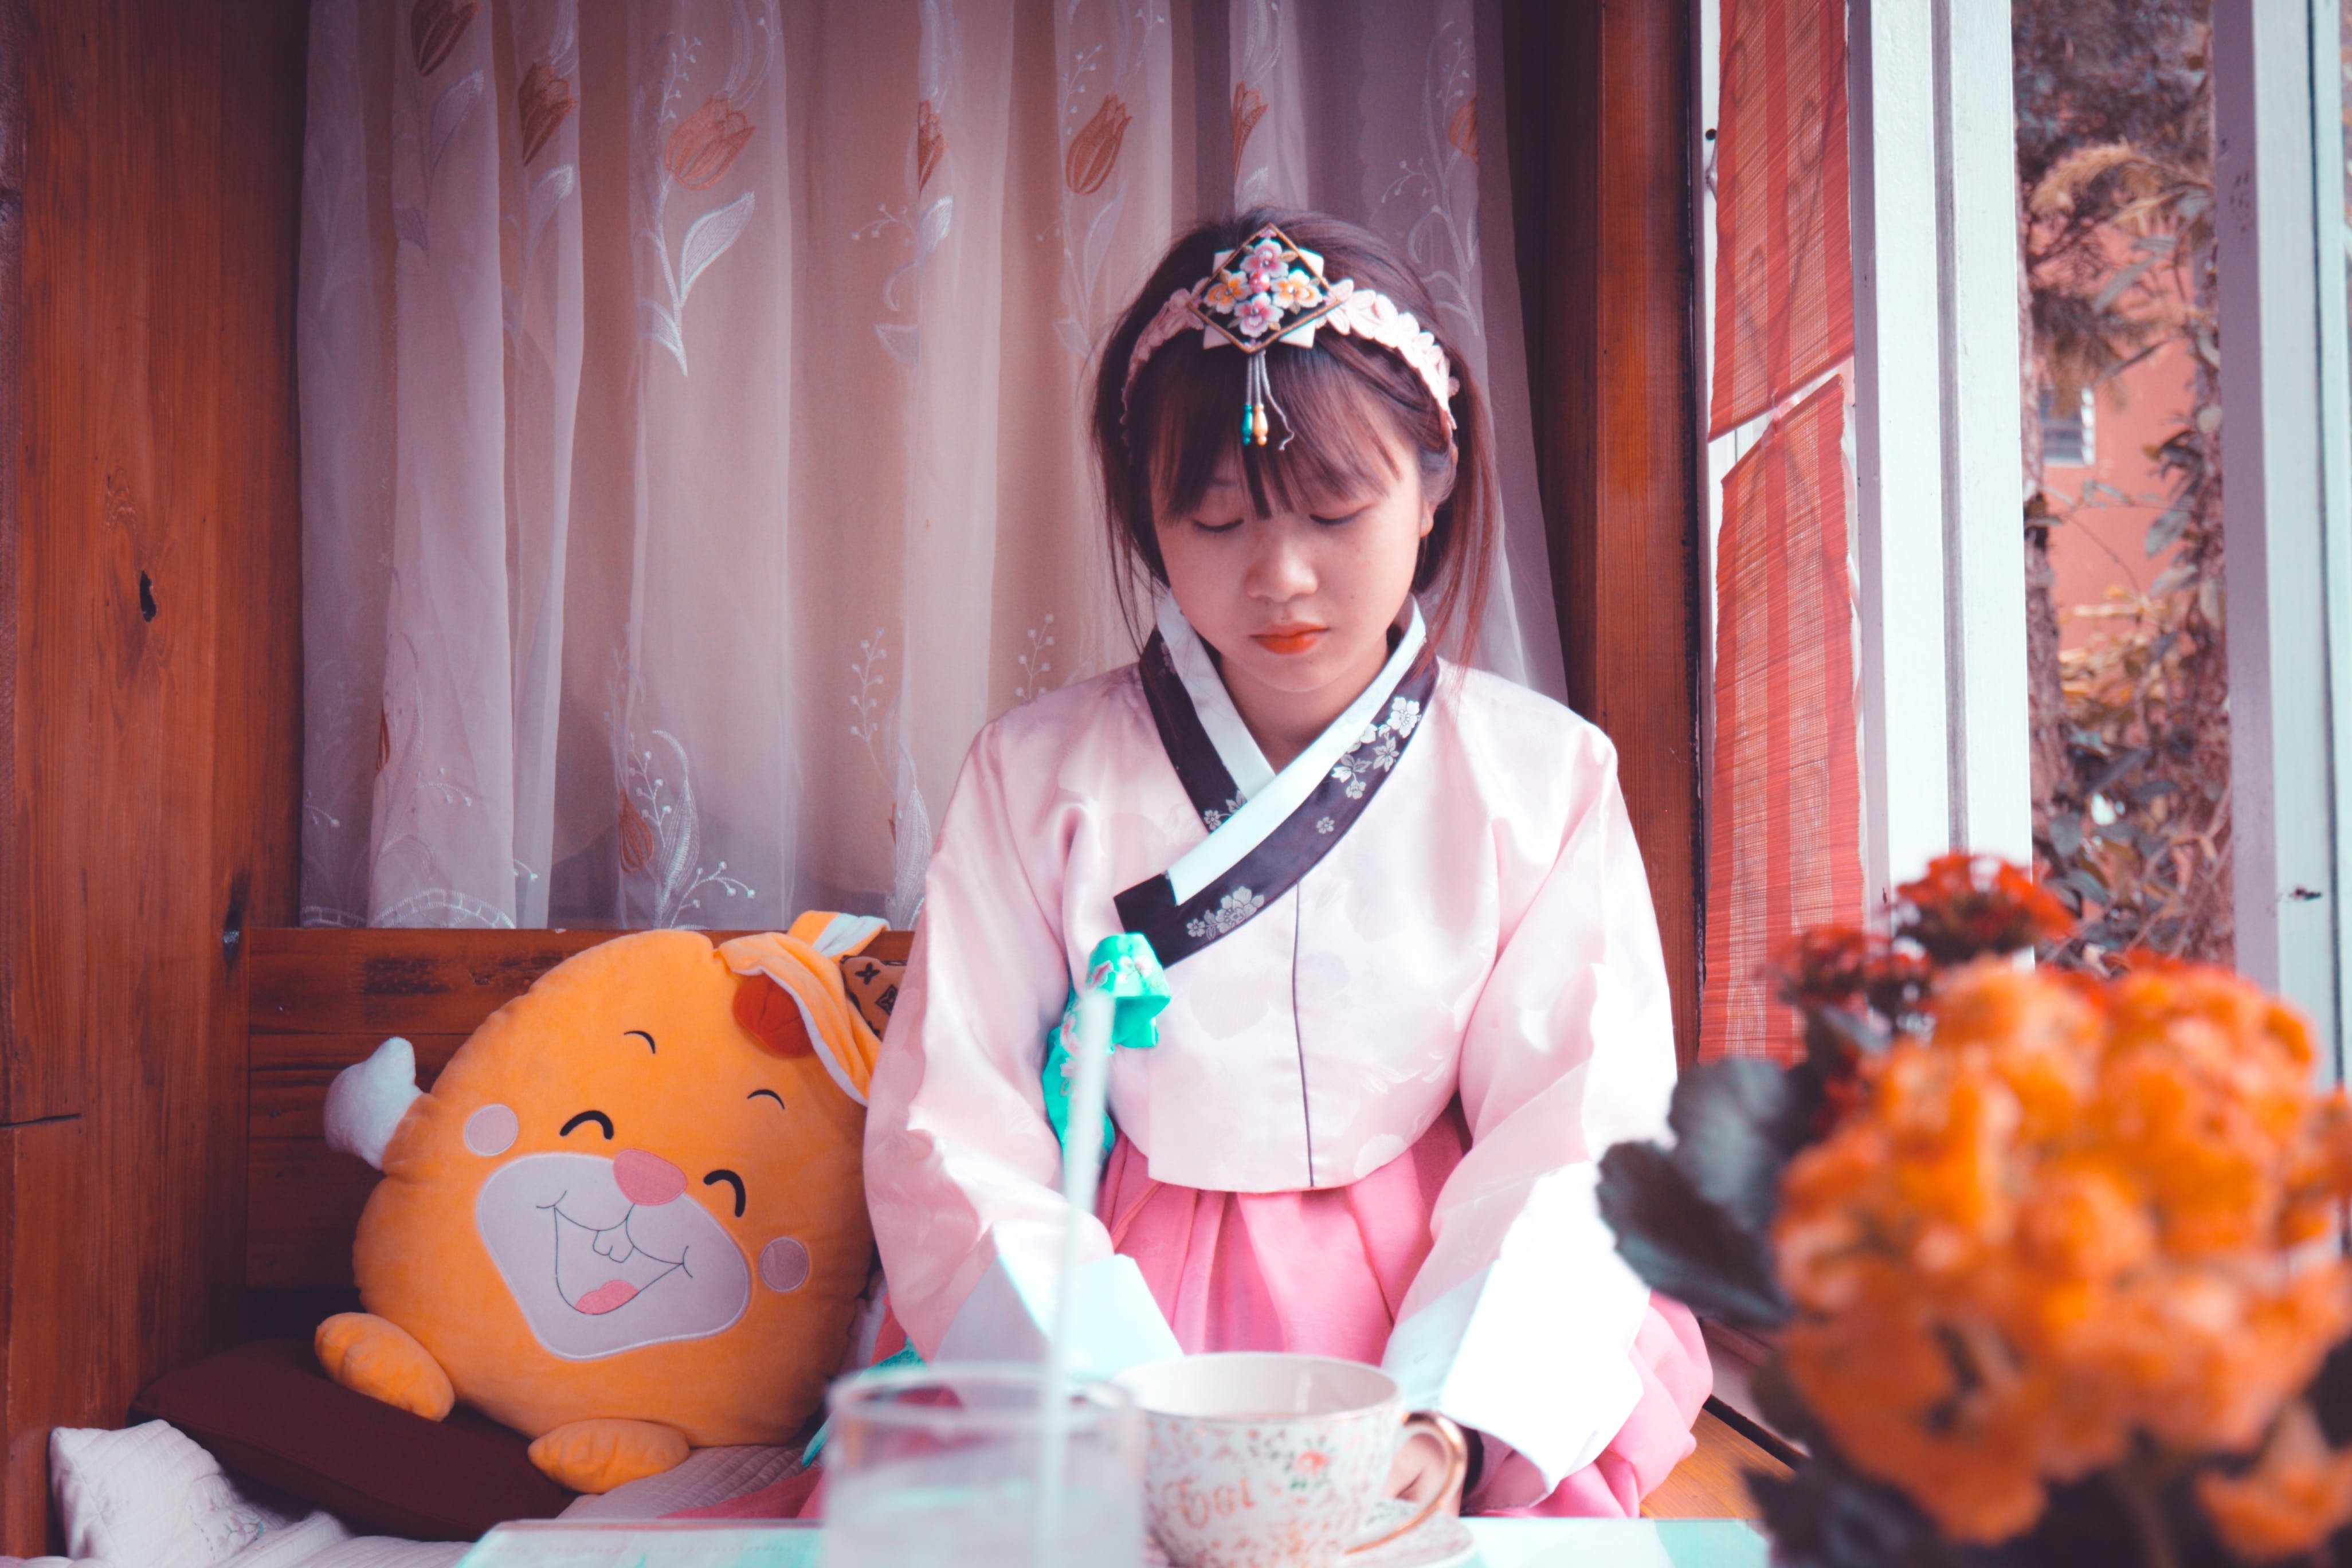 Woman Wearing White and Pink Traditional Korean Dress Sitting Near Yellow Plush Toy